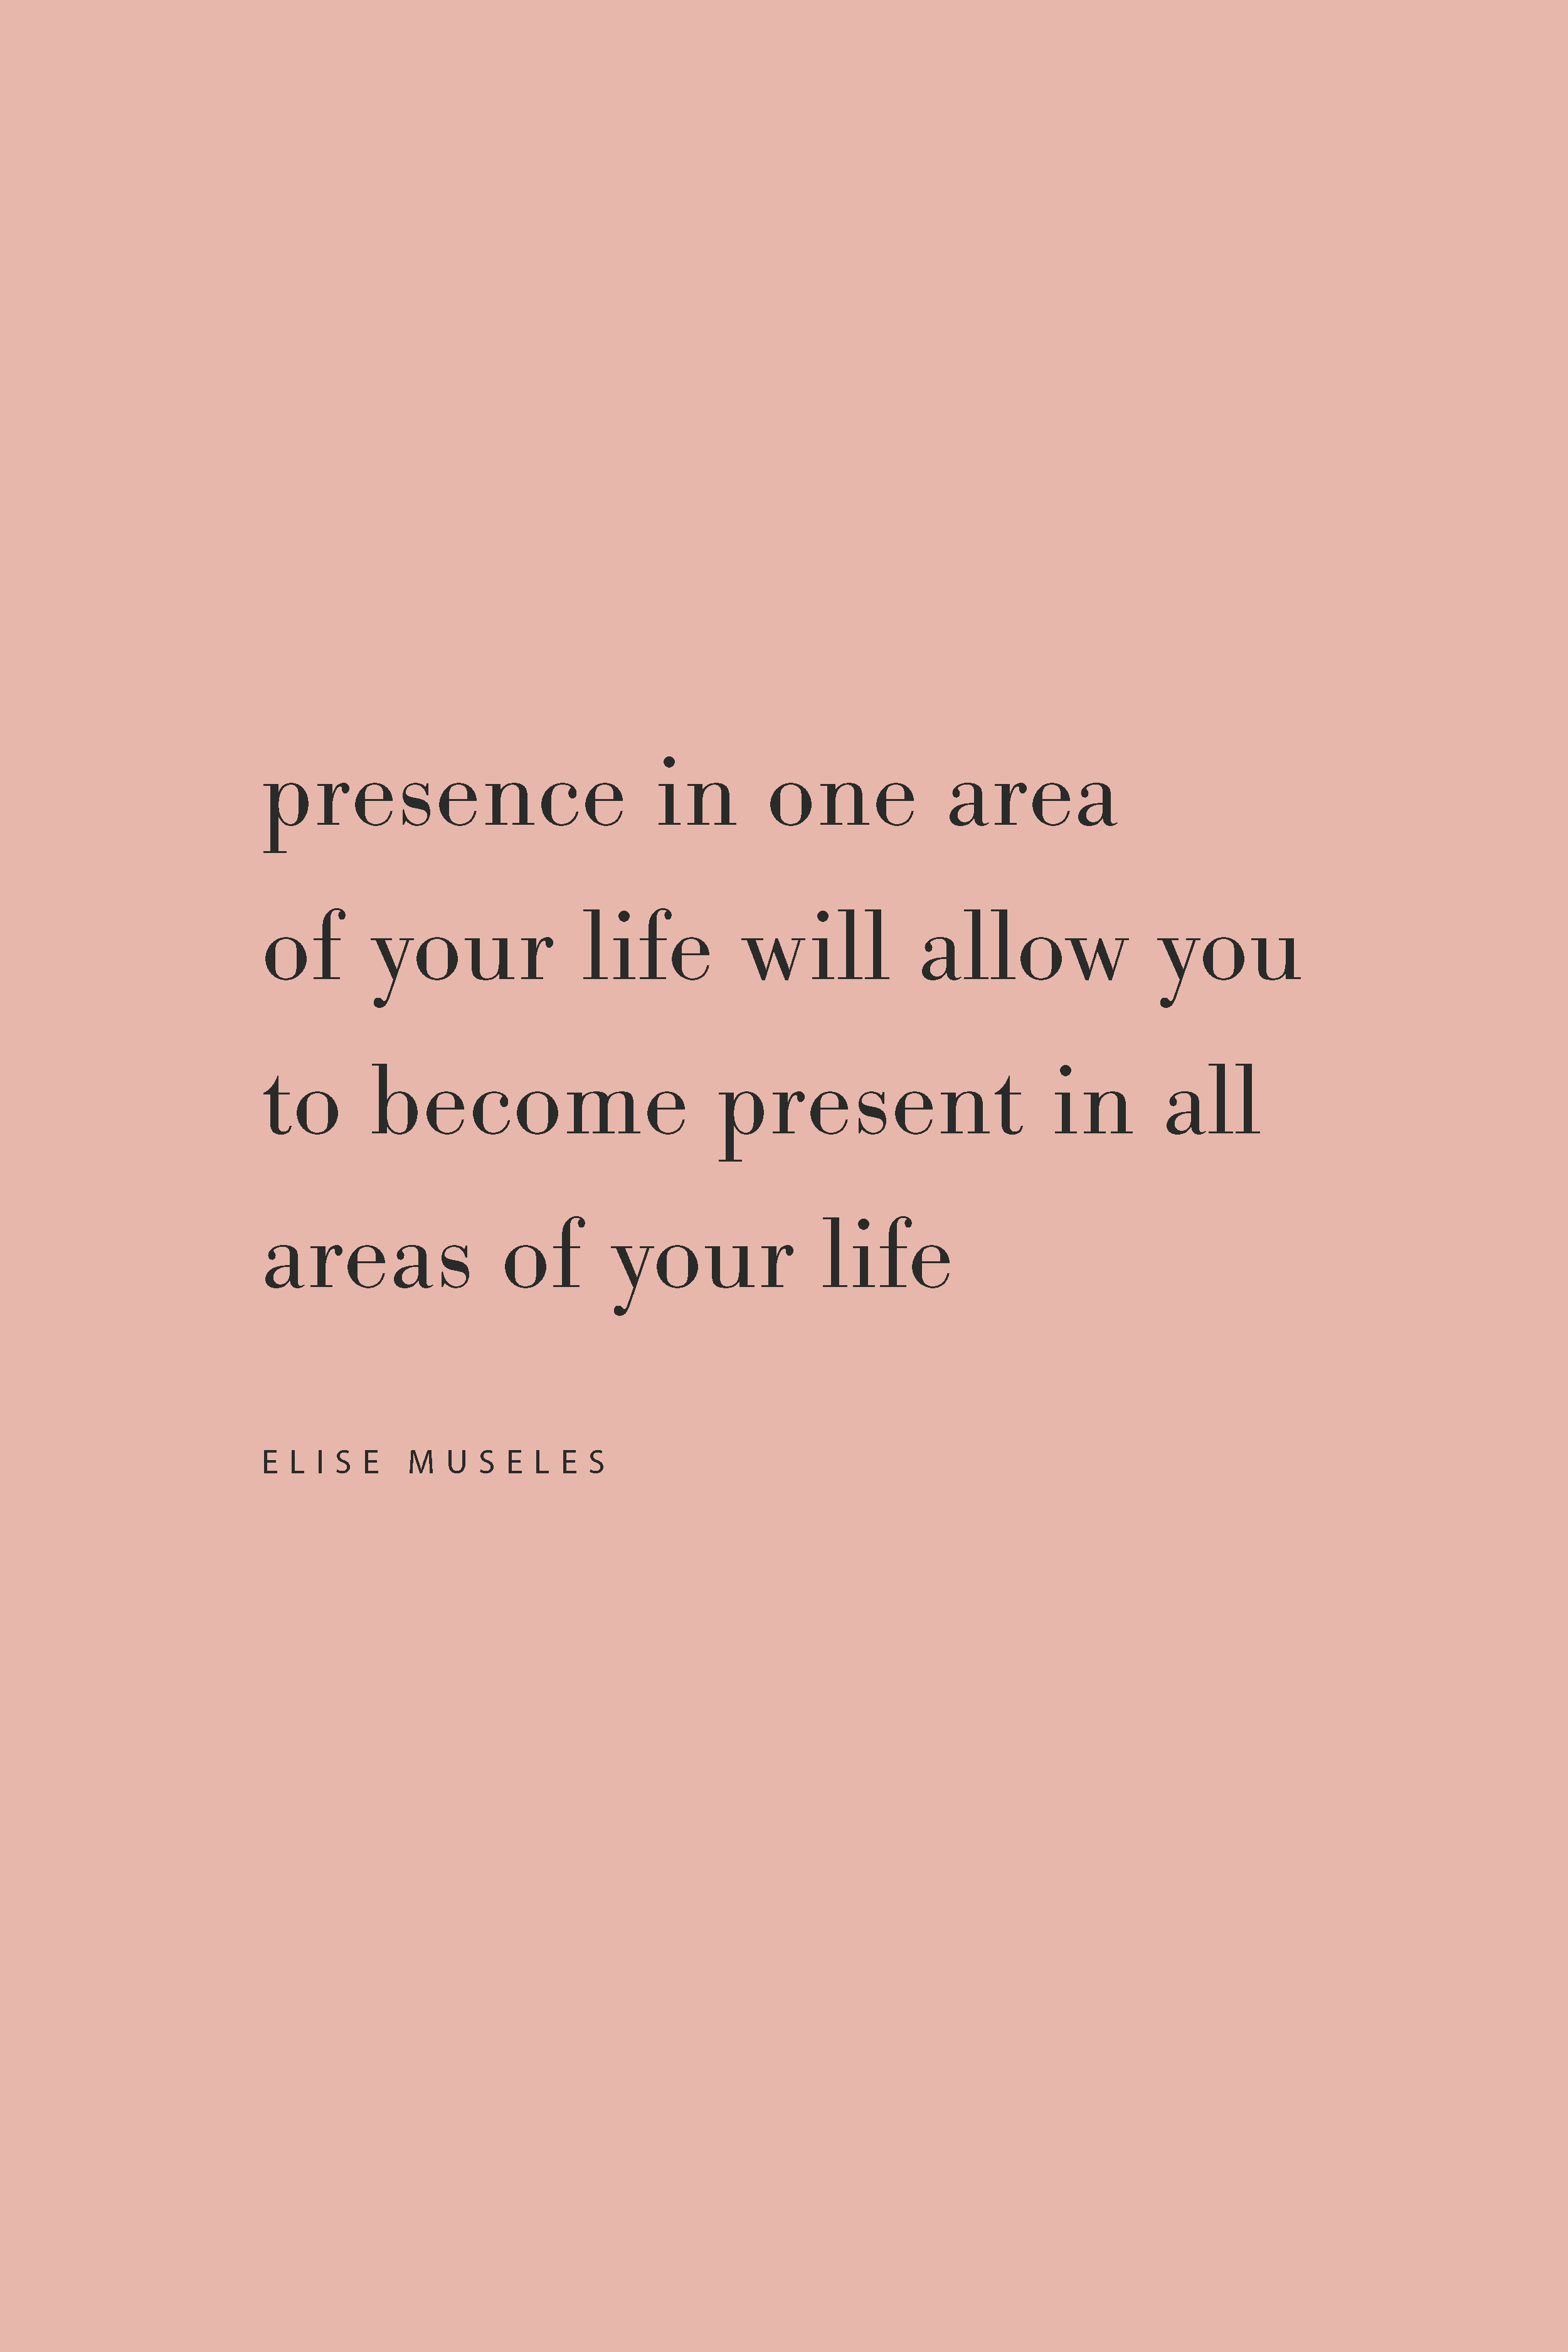 Quote from Elise Museles. Become present in your life, from the Feel Good Effect Podcast. #feelgoodeffectpodcast #podcast #quotes #presence #mindfulness